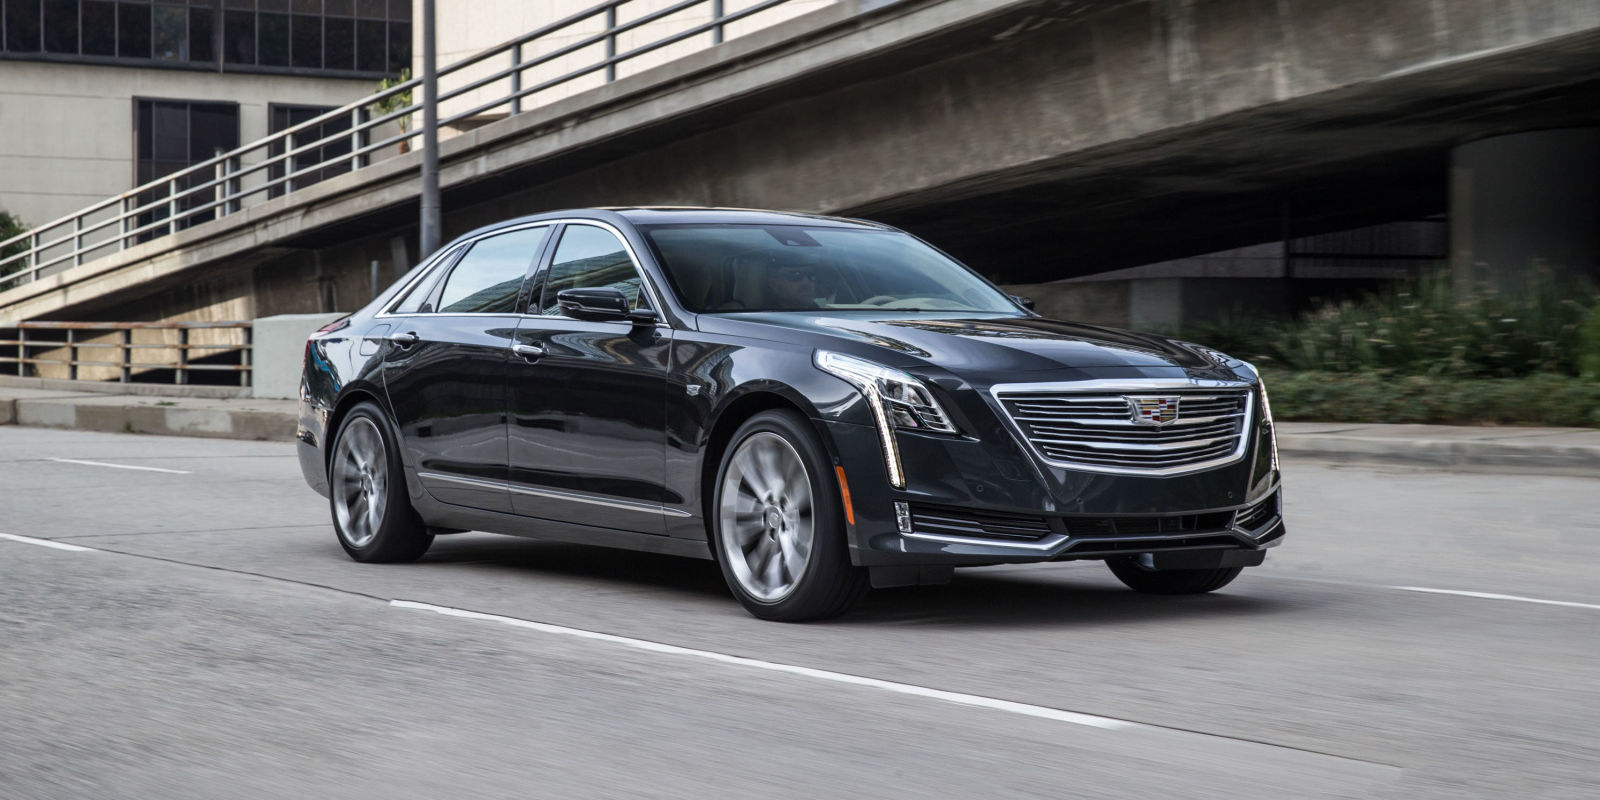 Best Cars Under 100000 >> The 2017 Cadillac CT6 Doesn't Want to be a BMW